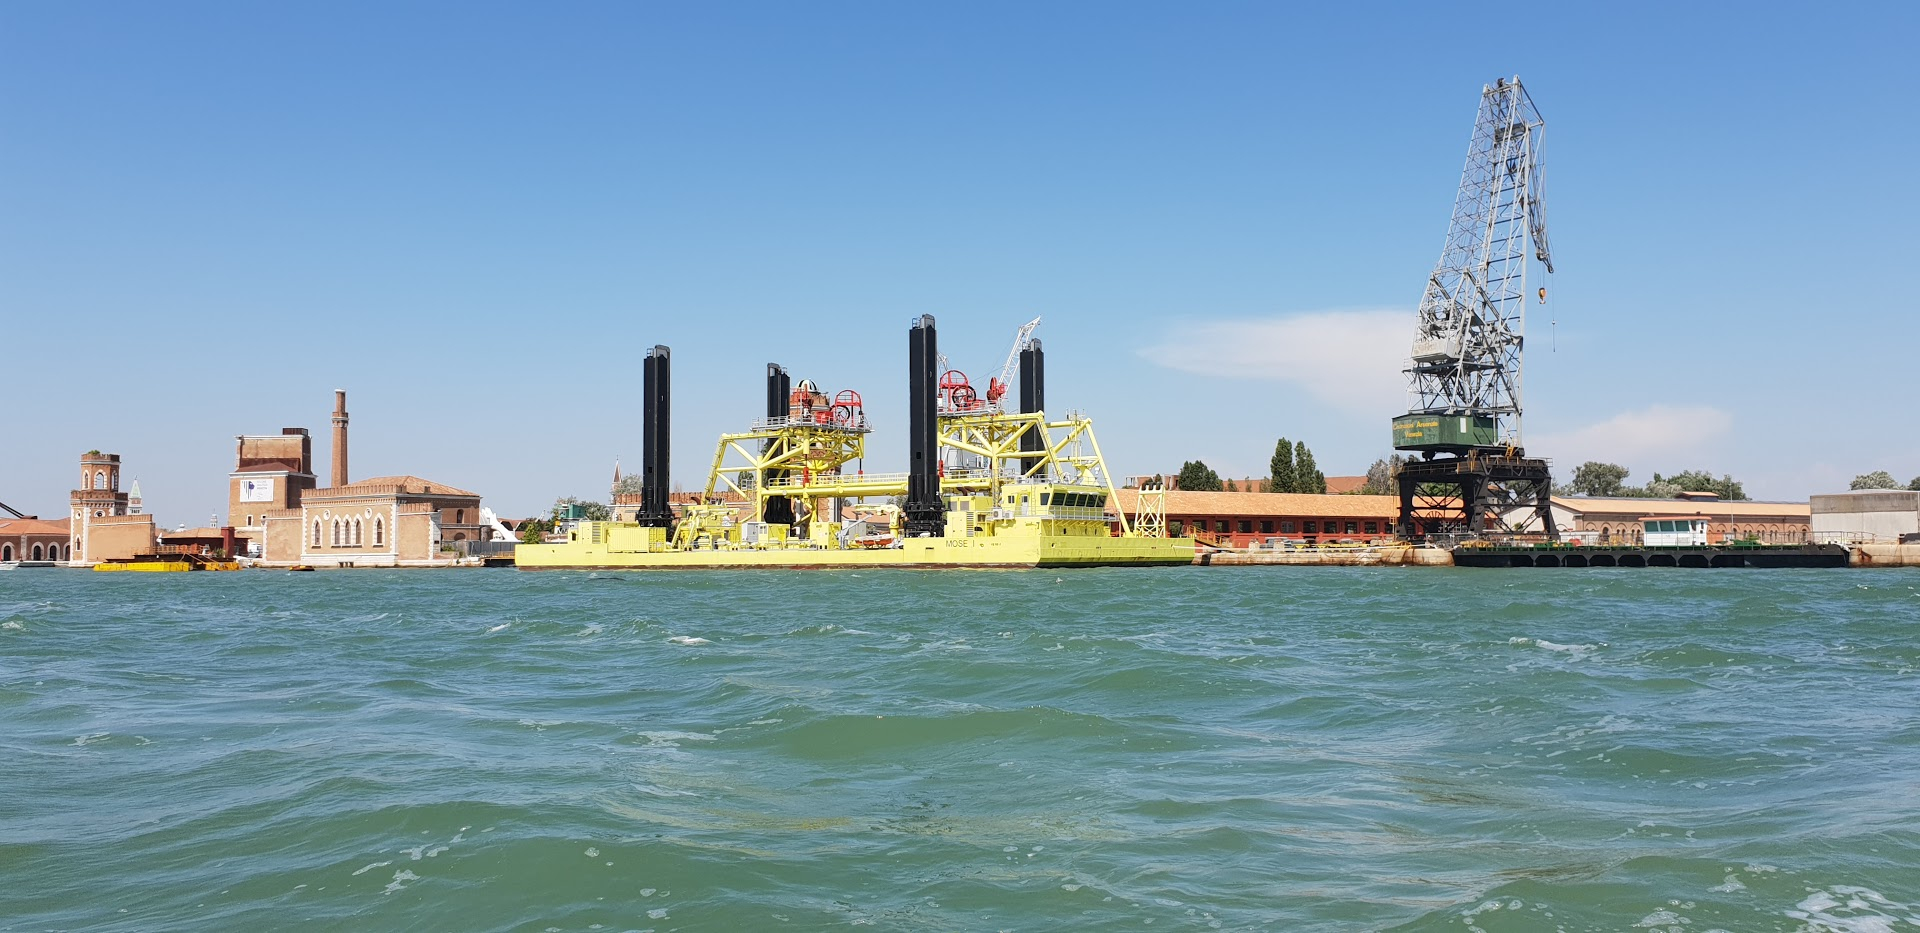 Venice - This is the MOSE Barge that is being used to position the various components of the 'flood barrier' at the mouth of the lagoon. Photo - Sept 2019 www.educated-traveller.com